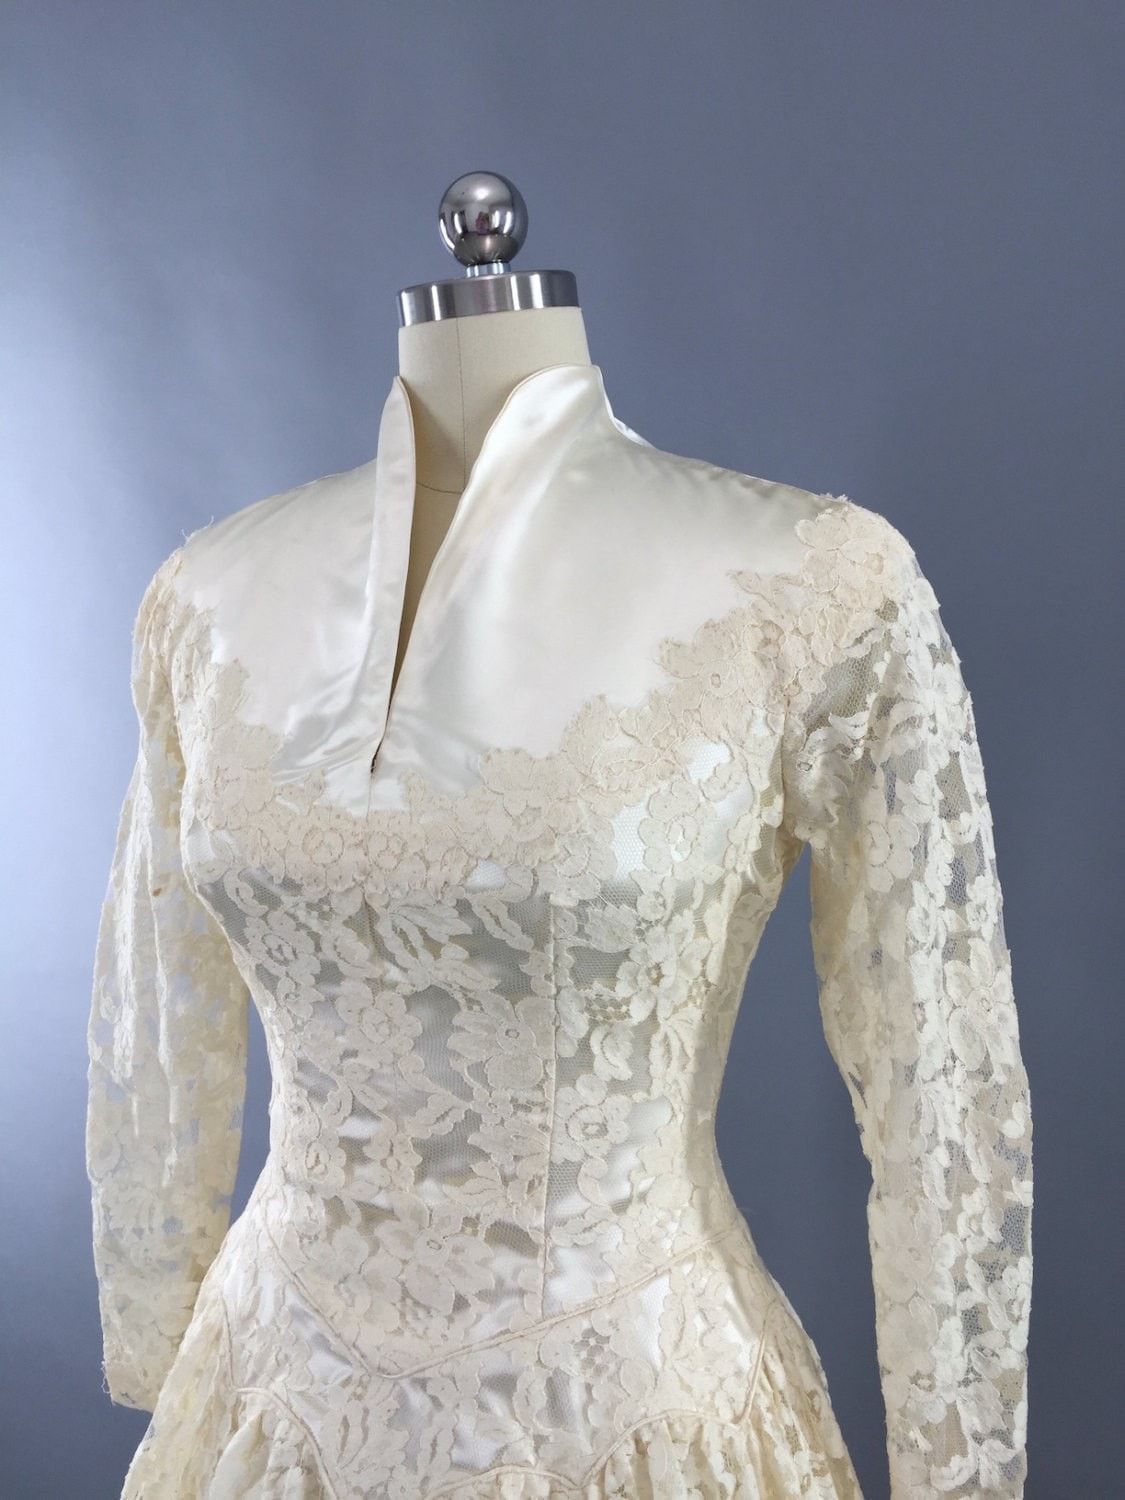 S vintage ivory lace and satin wedding dress in couture